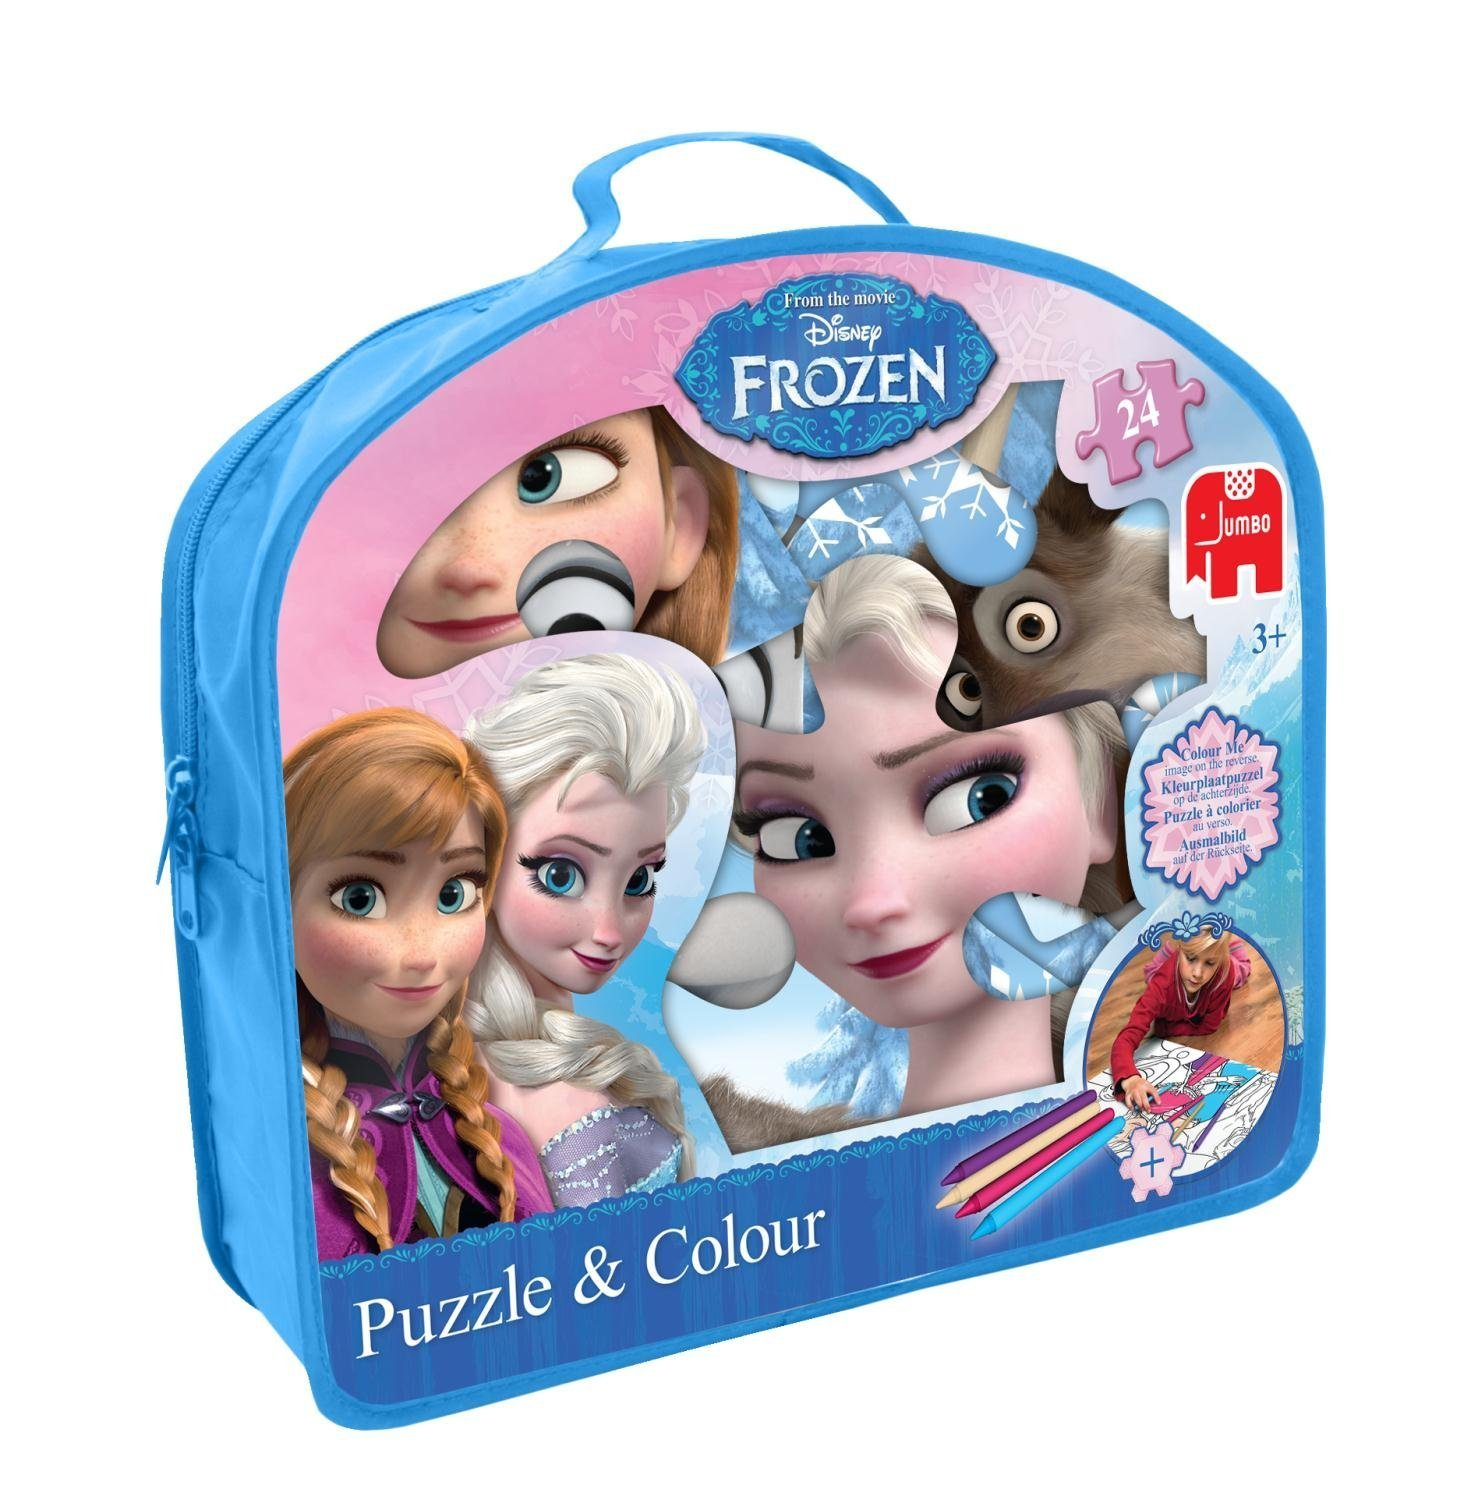 Kleurplaten Film Frozen.Buy Disney Frozen Giant And Color Floor Jigsaw Puzzle 24 Piece